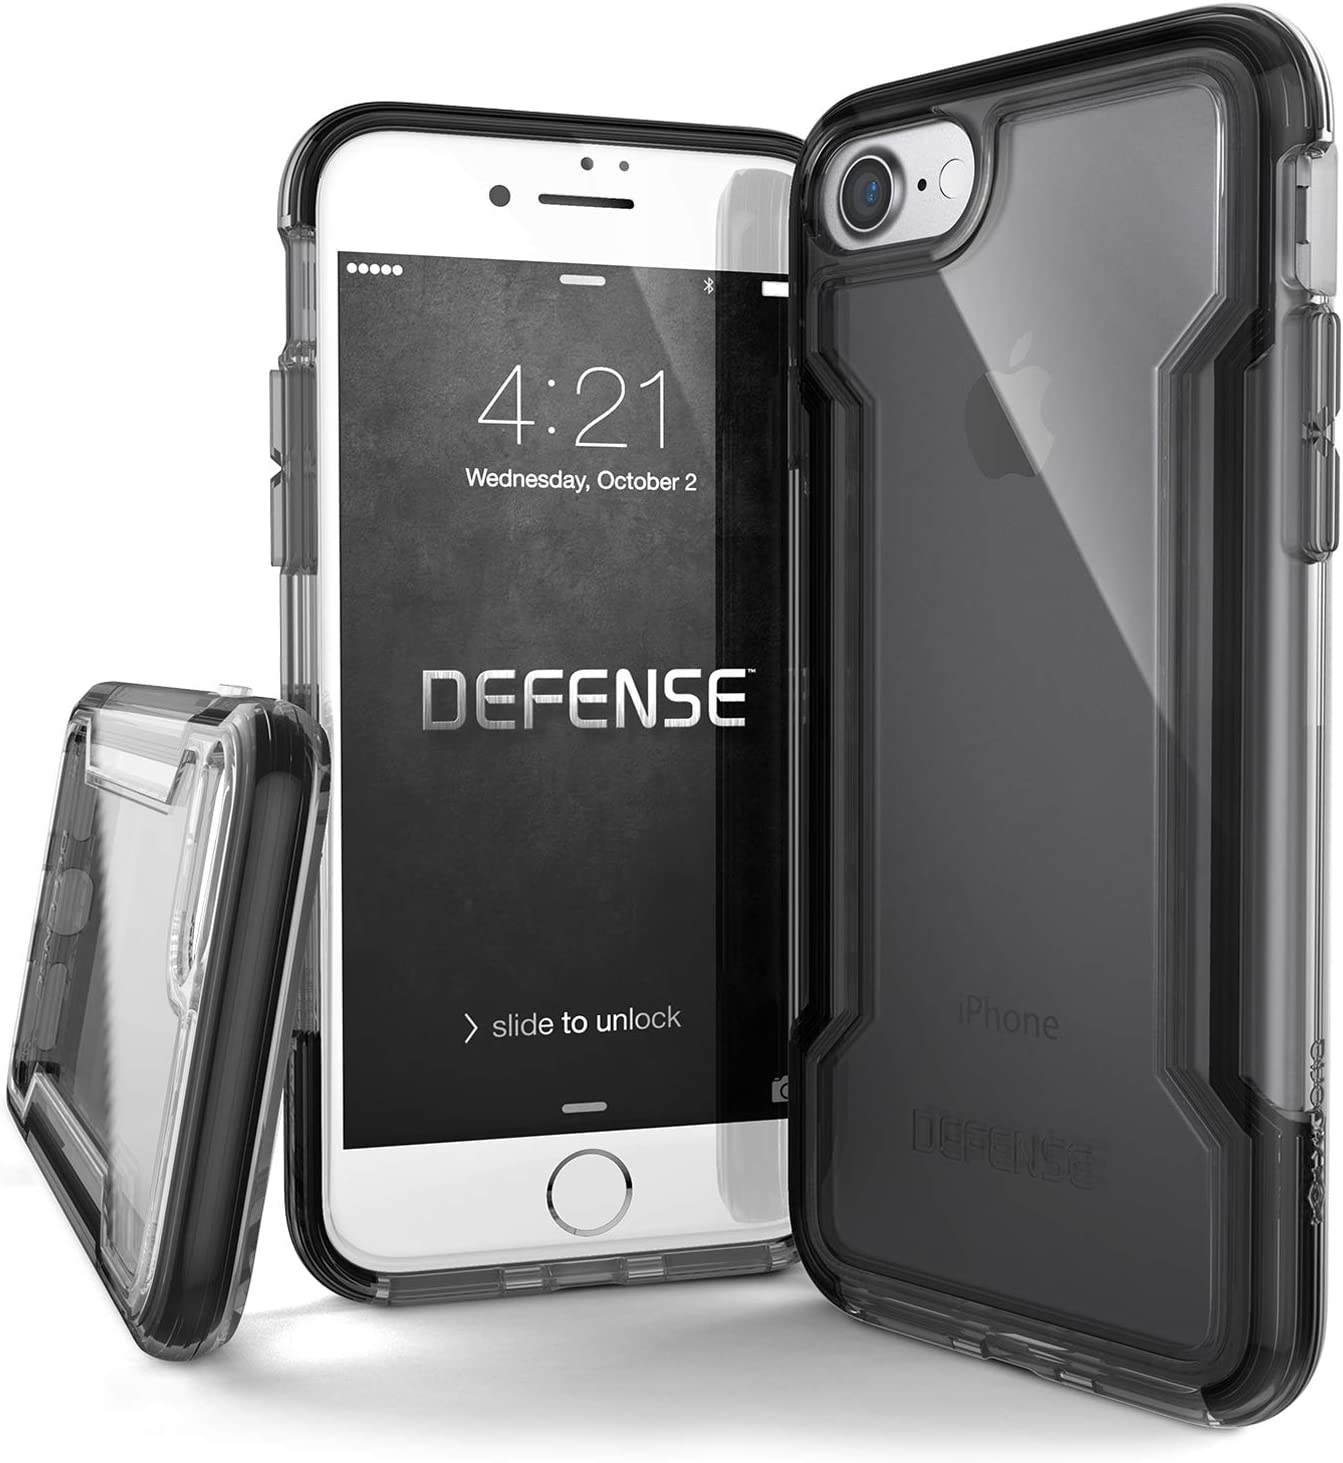 X-Doria iPhone SE/8/7 Case, Defense Clear - Military Grade Drop Protection, Clear Protective Case for iPhone SE/8/7 (Black)